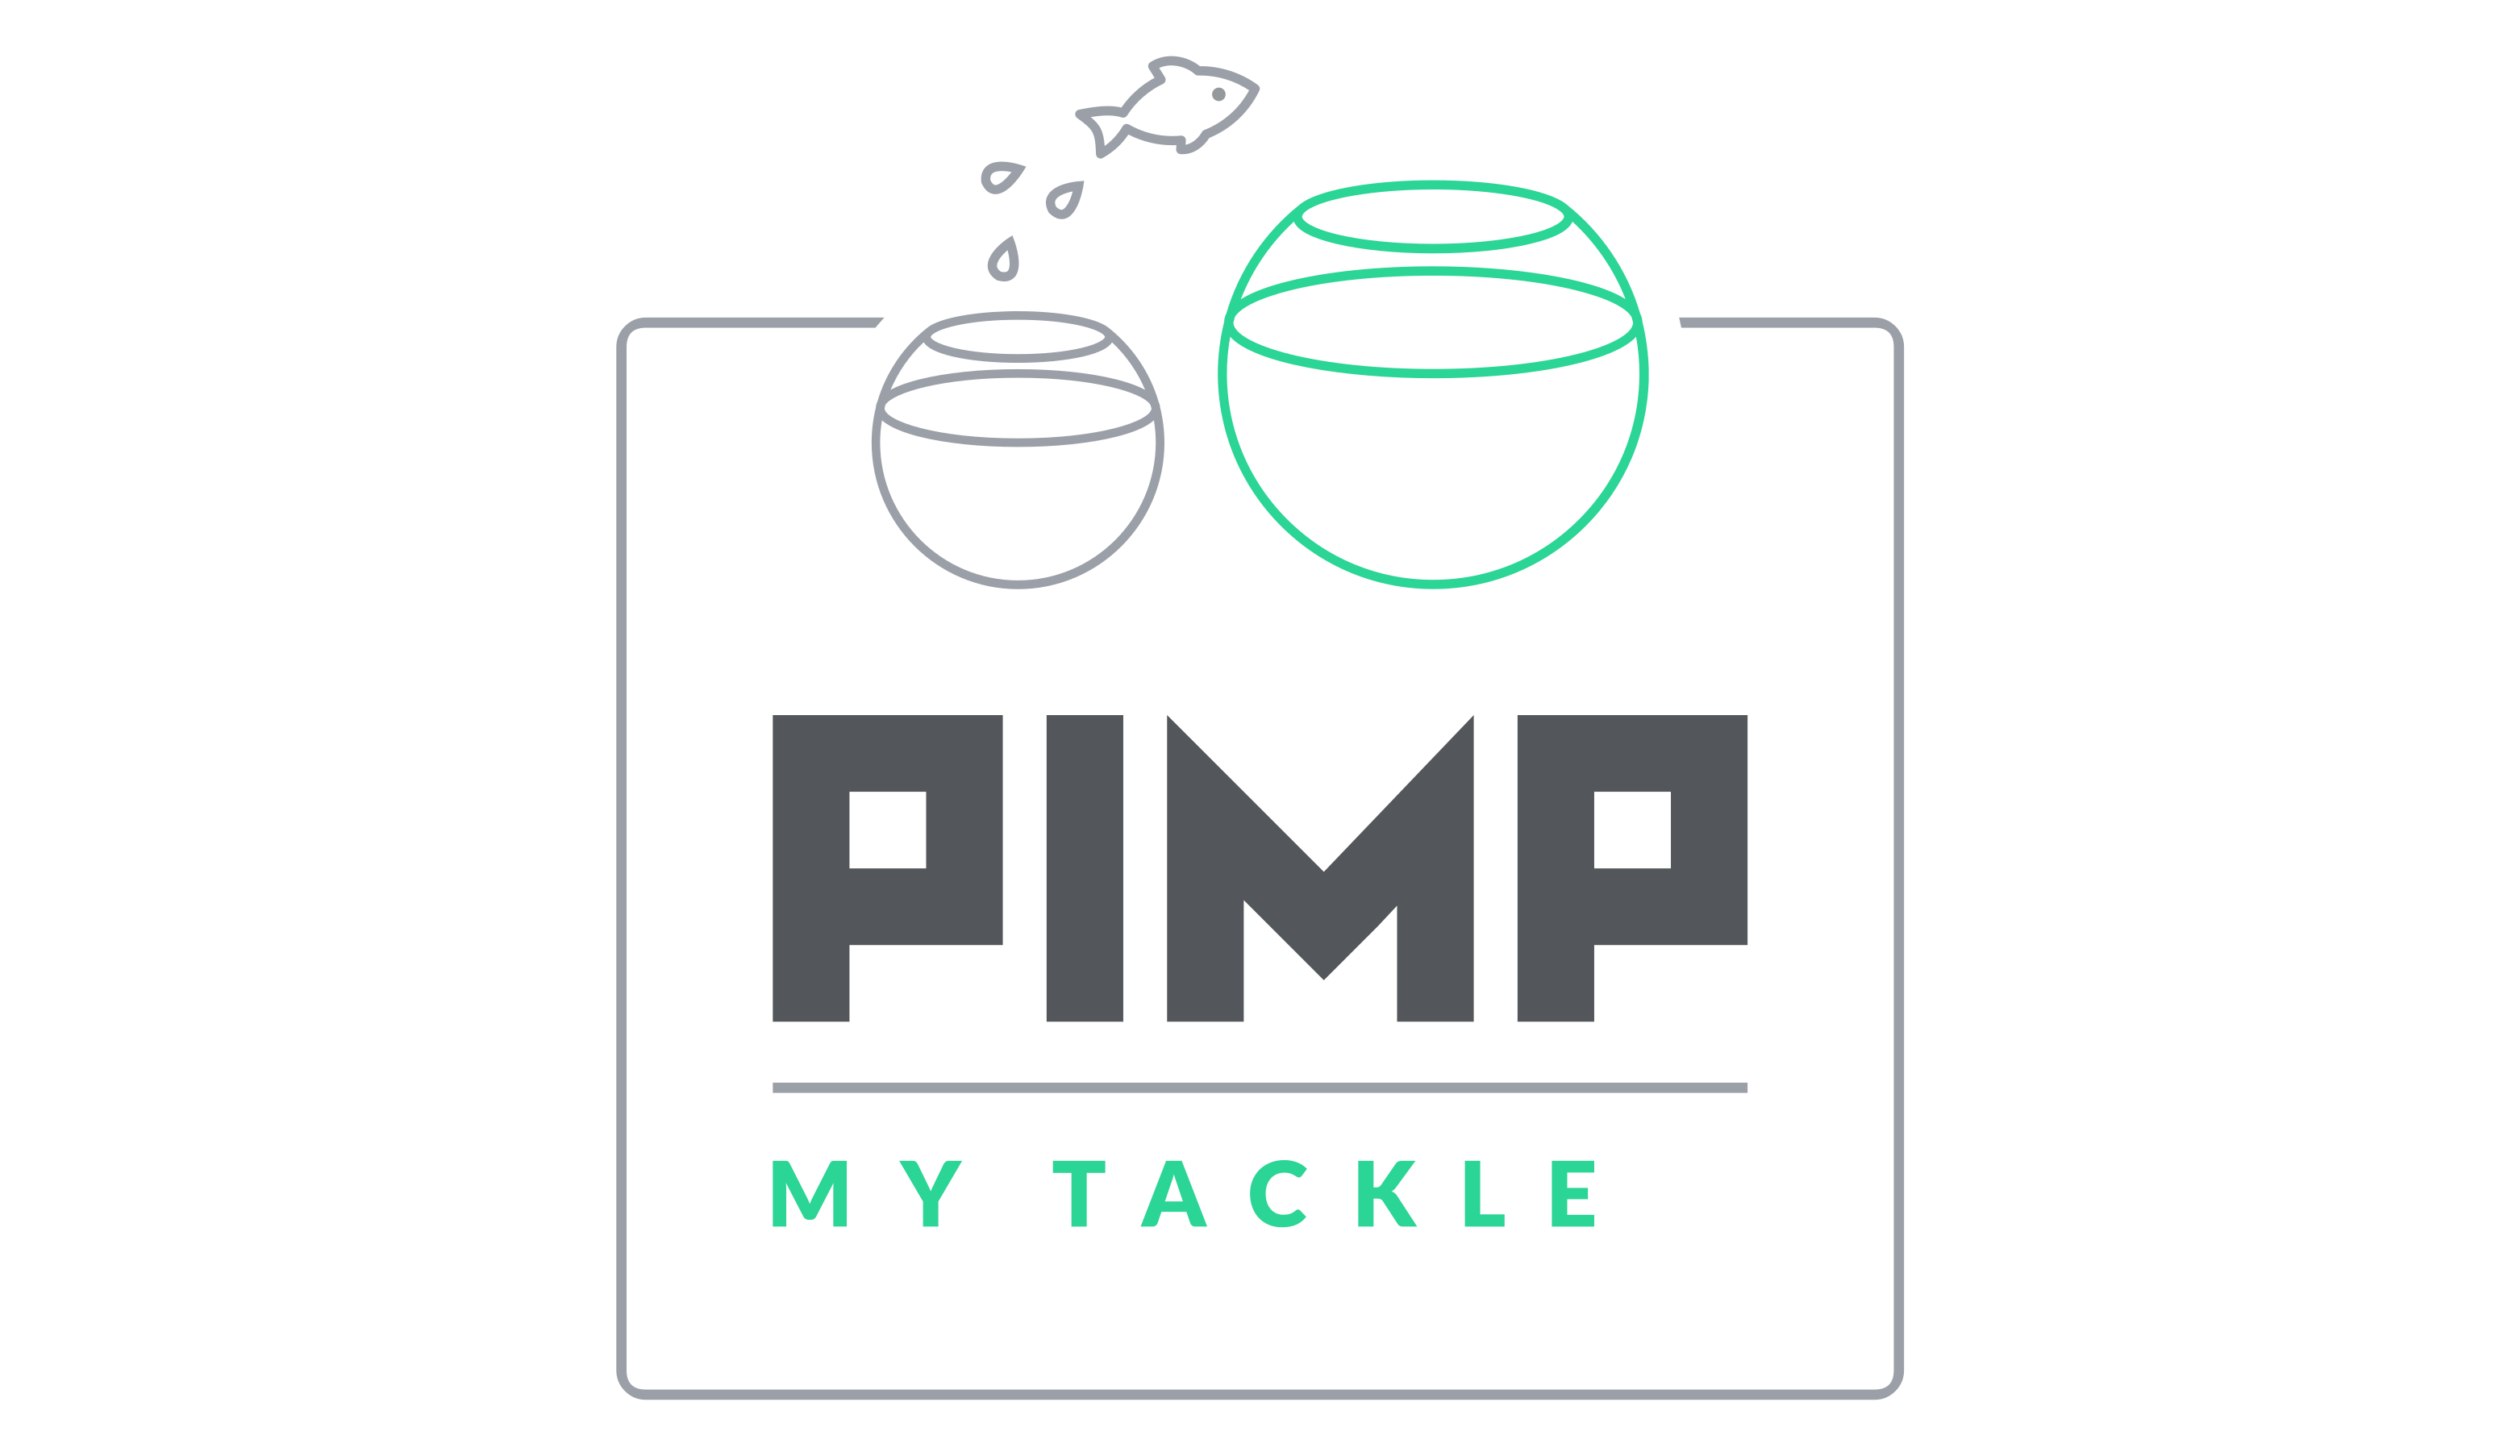 Pimp My Tackle